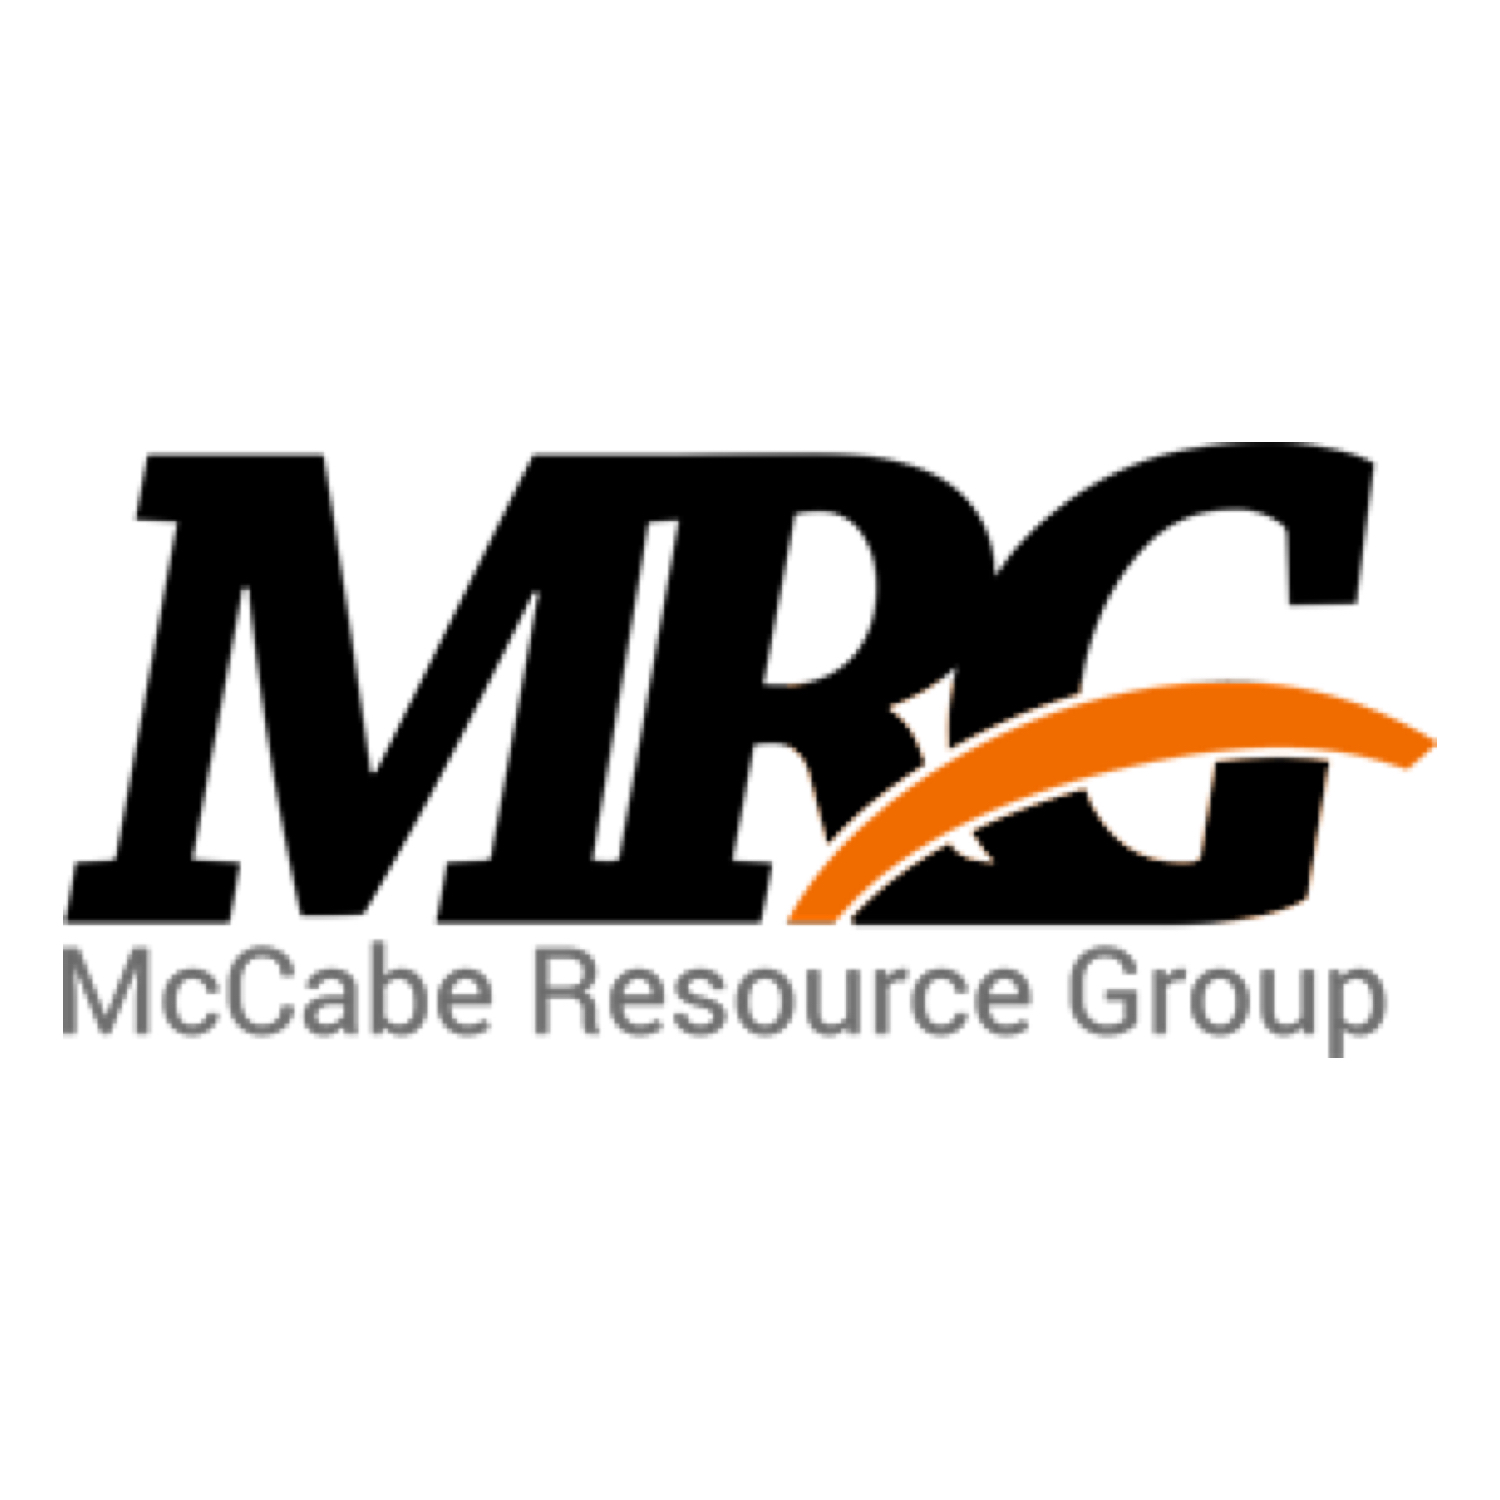 McCabe Resource Group   McCabe Resource Group provides fractional-time CFO support, giving your start-up/early-stage company the advantages of a dedicated CFO at a fraction of the cost. Keep the mad scientist being a mad scientist.